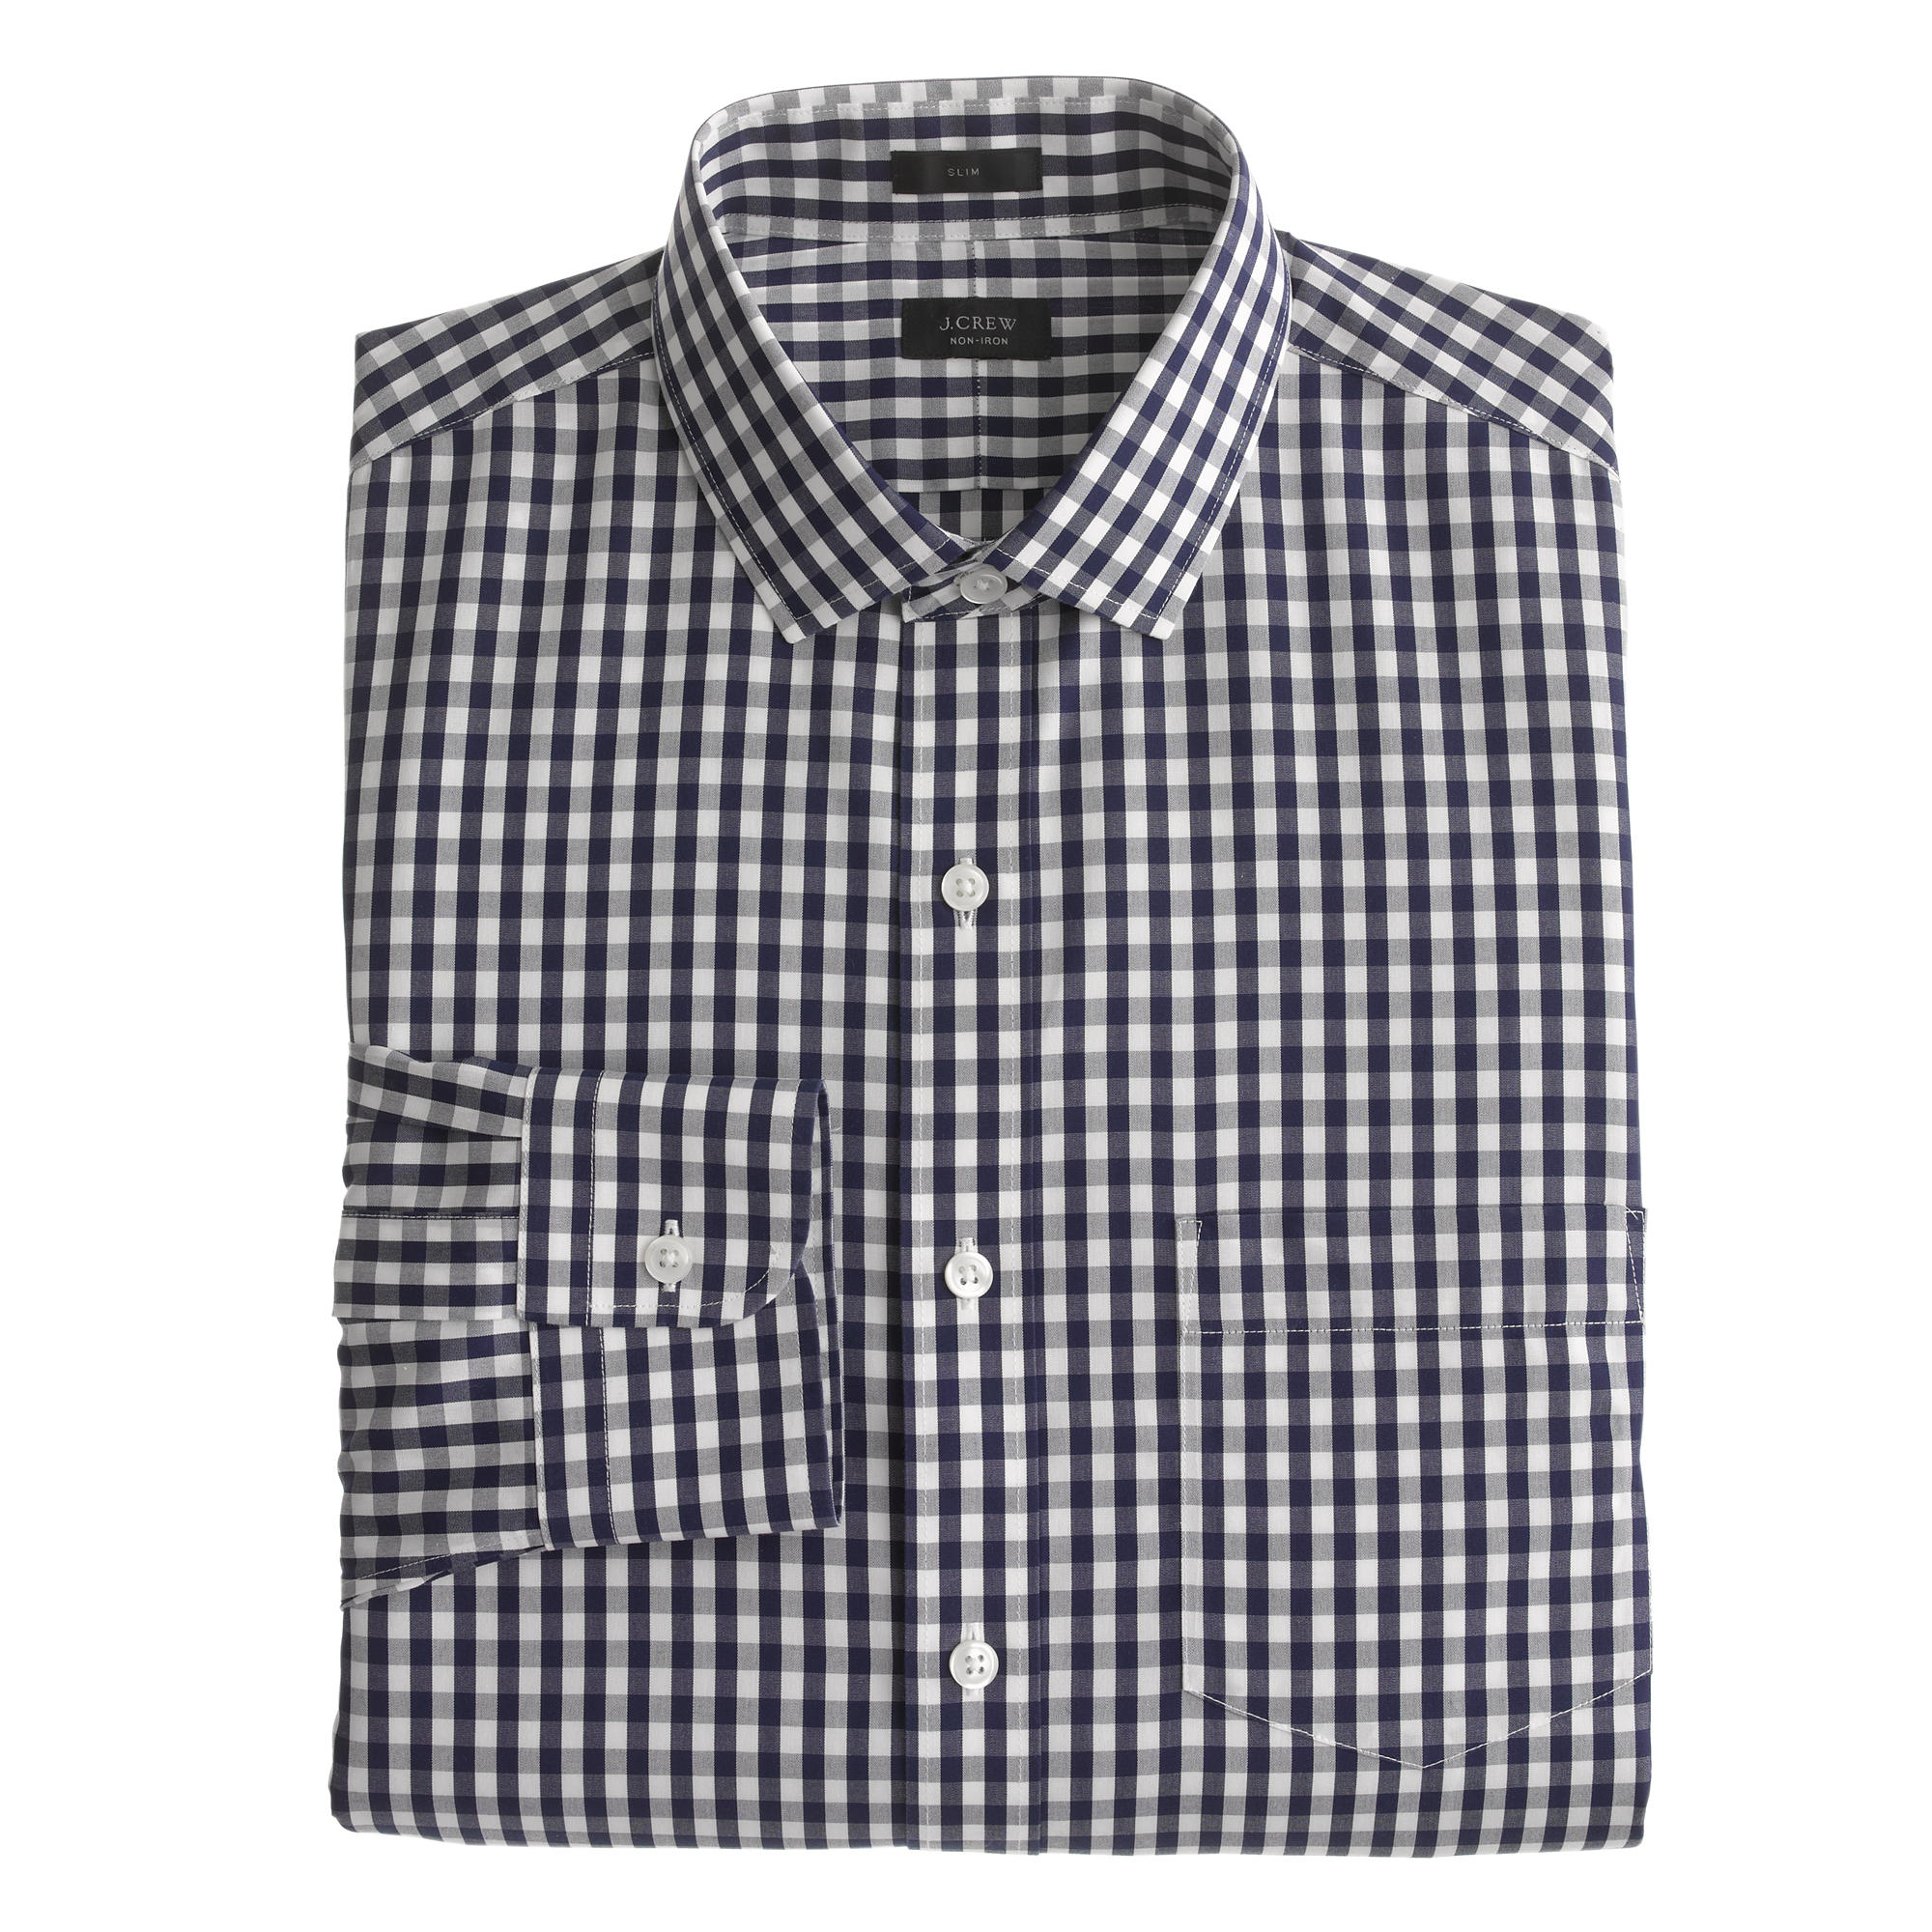 Ludlow Traveler Shirt In Navy Gingham In White For